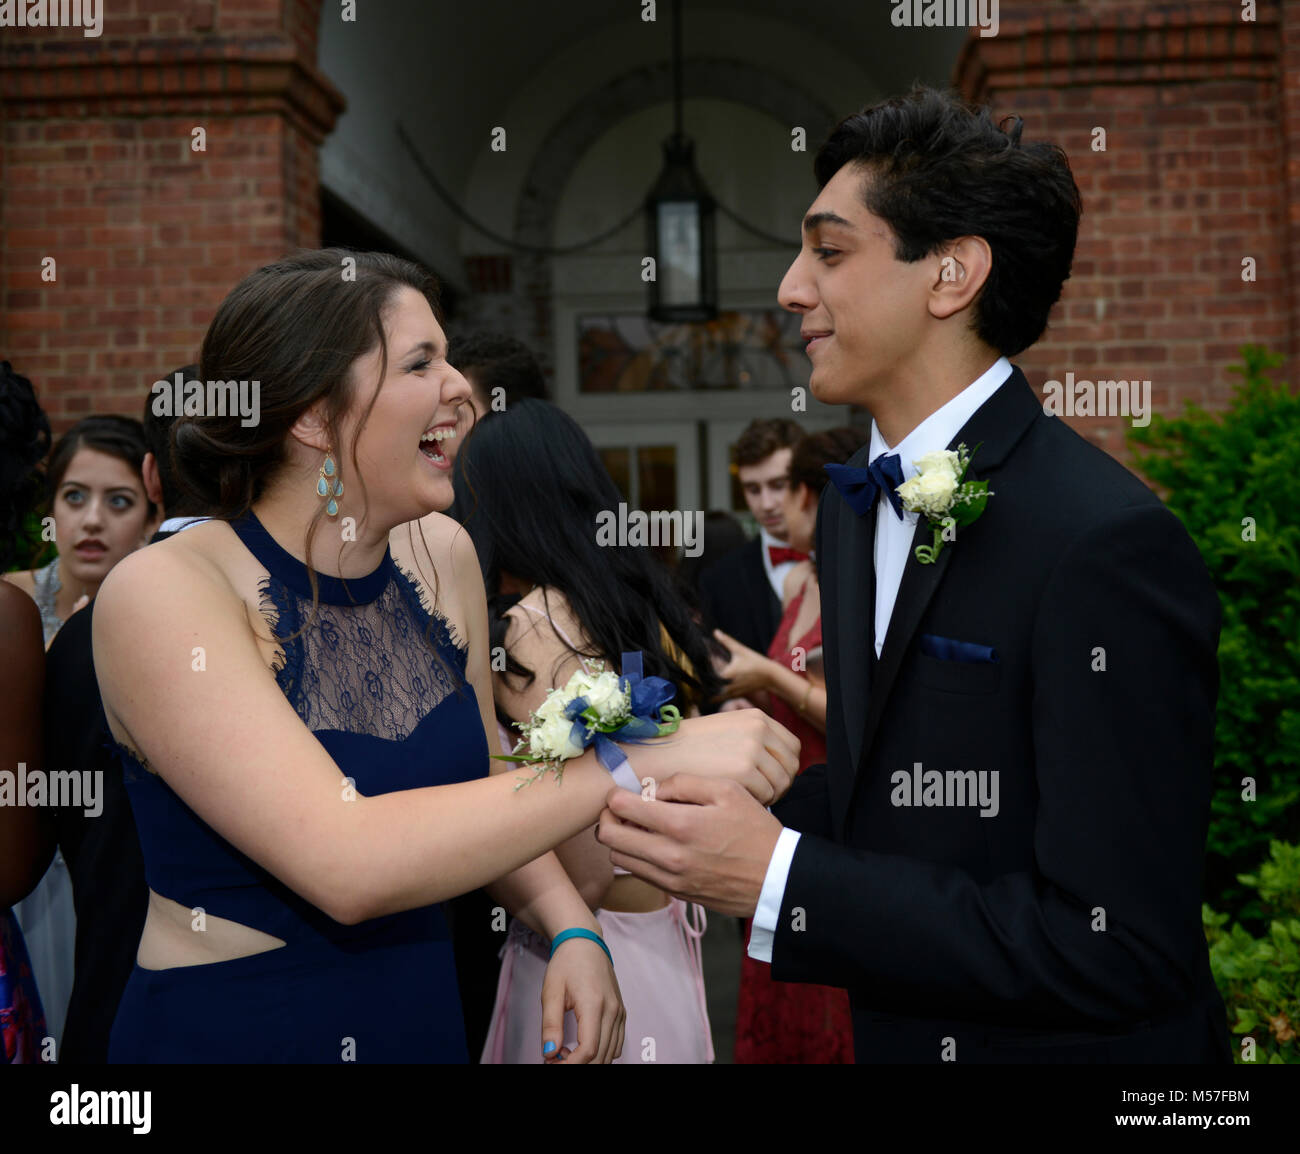 17 yr old high school juniors who just put on their boutonniere and wrist bouquet for prom.  He is Indian-American - Stock Image